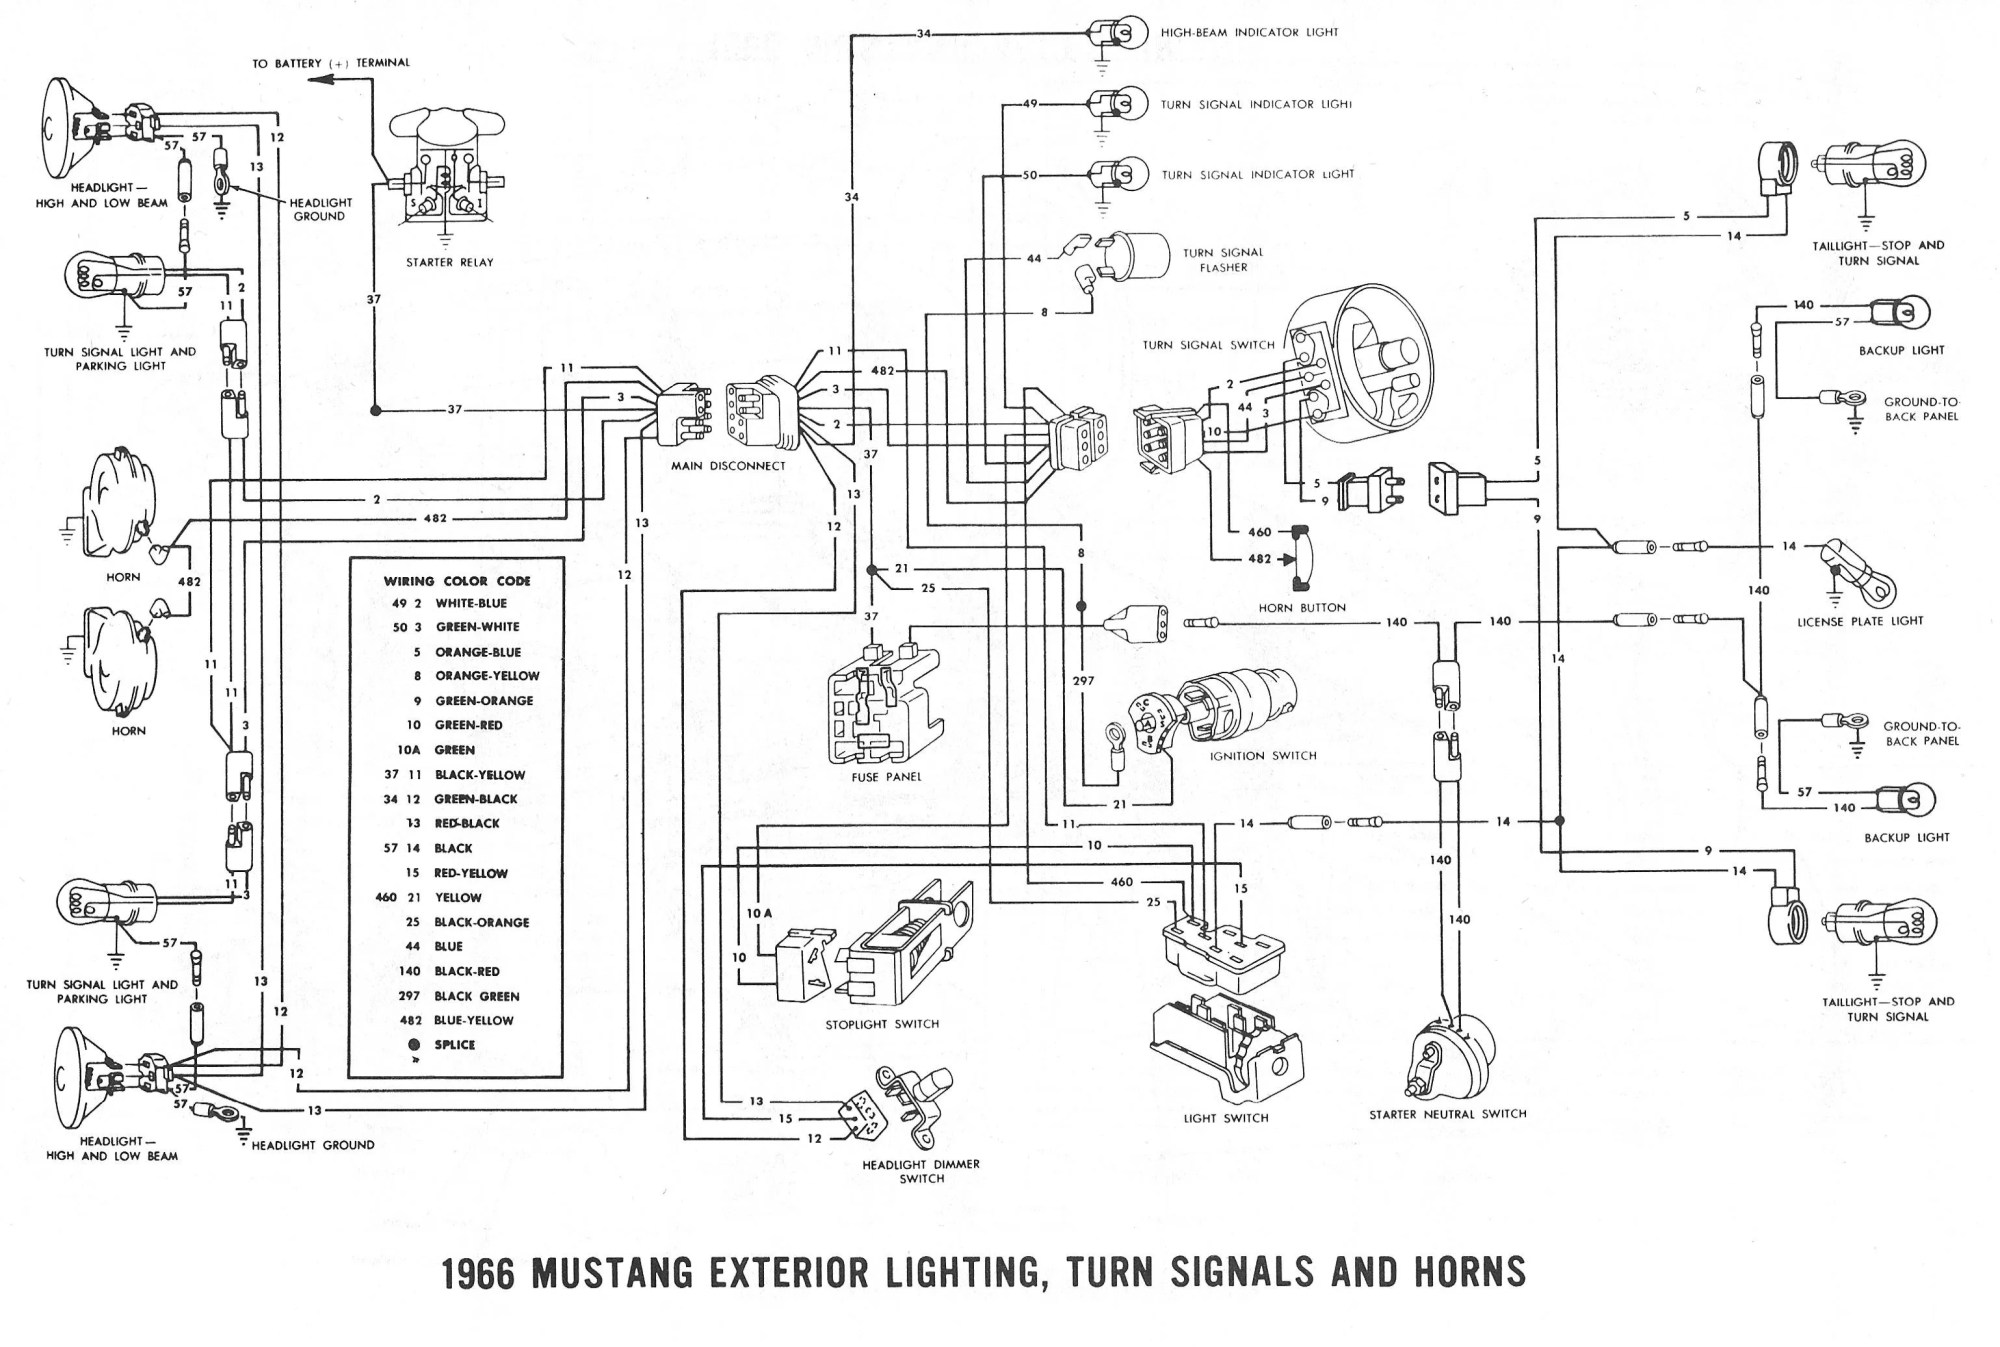 hight resolution of 1966 ford mustang alternator wiring diagram wiring diagram show 1969 ford mustang alternator wiring diagram ford mustang alternator wiring diagram